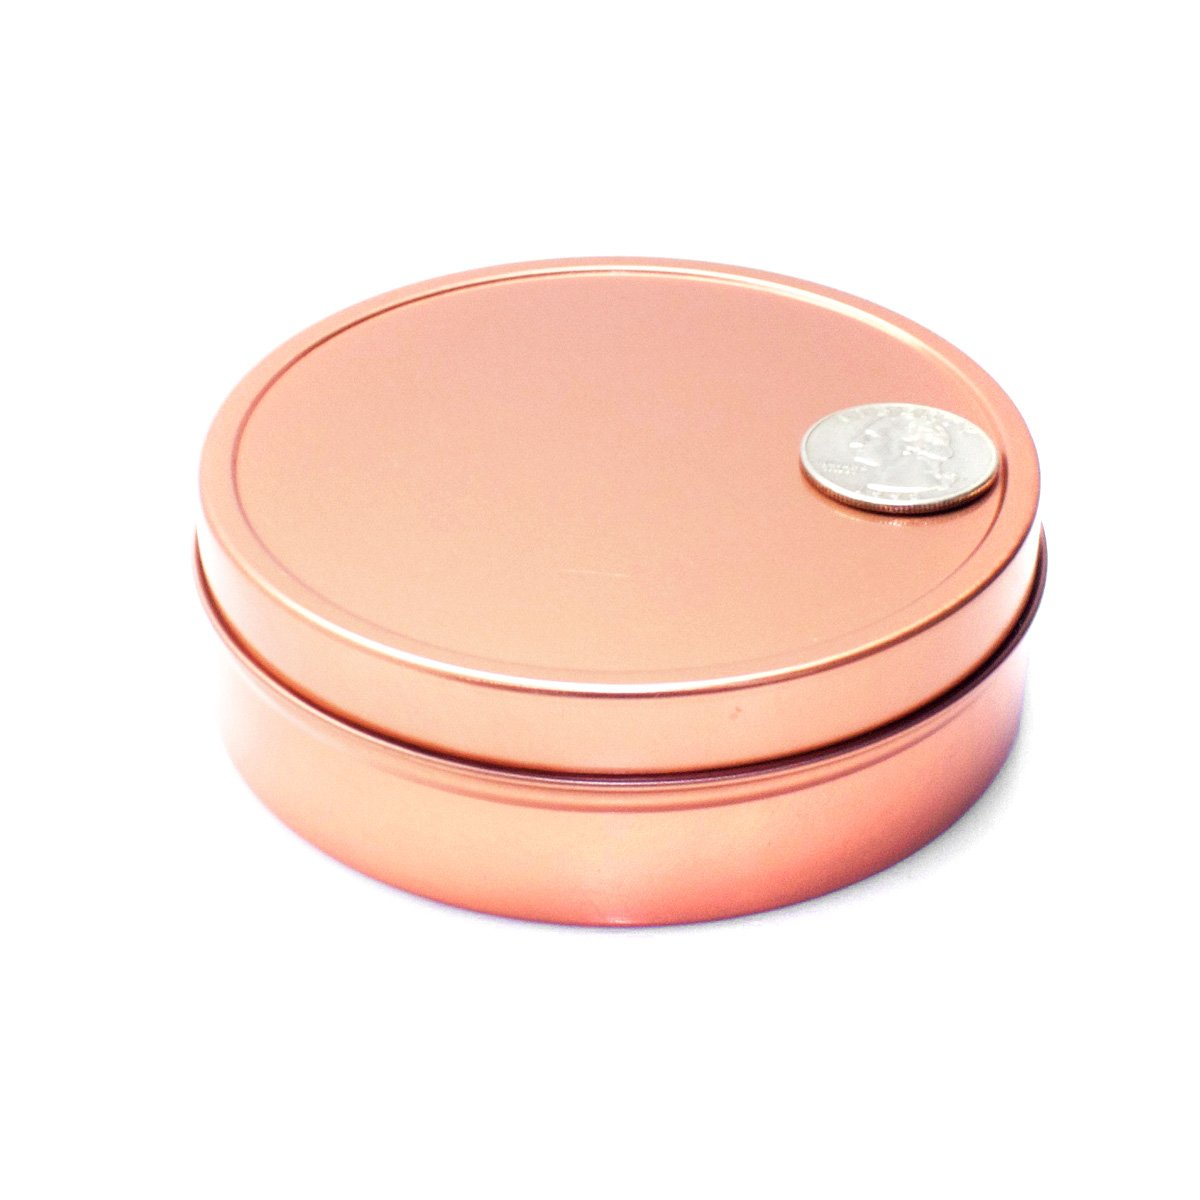 Mimi Pack ALL Shallow Solid Slip Top Tins (8 oz, Rose Gold) by Mimi Pack (Image #5)